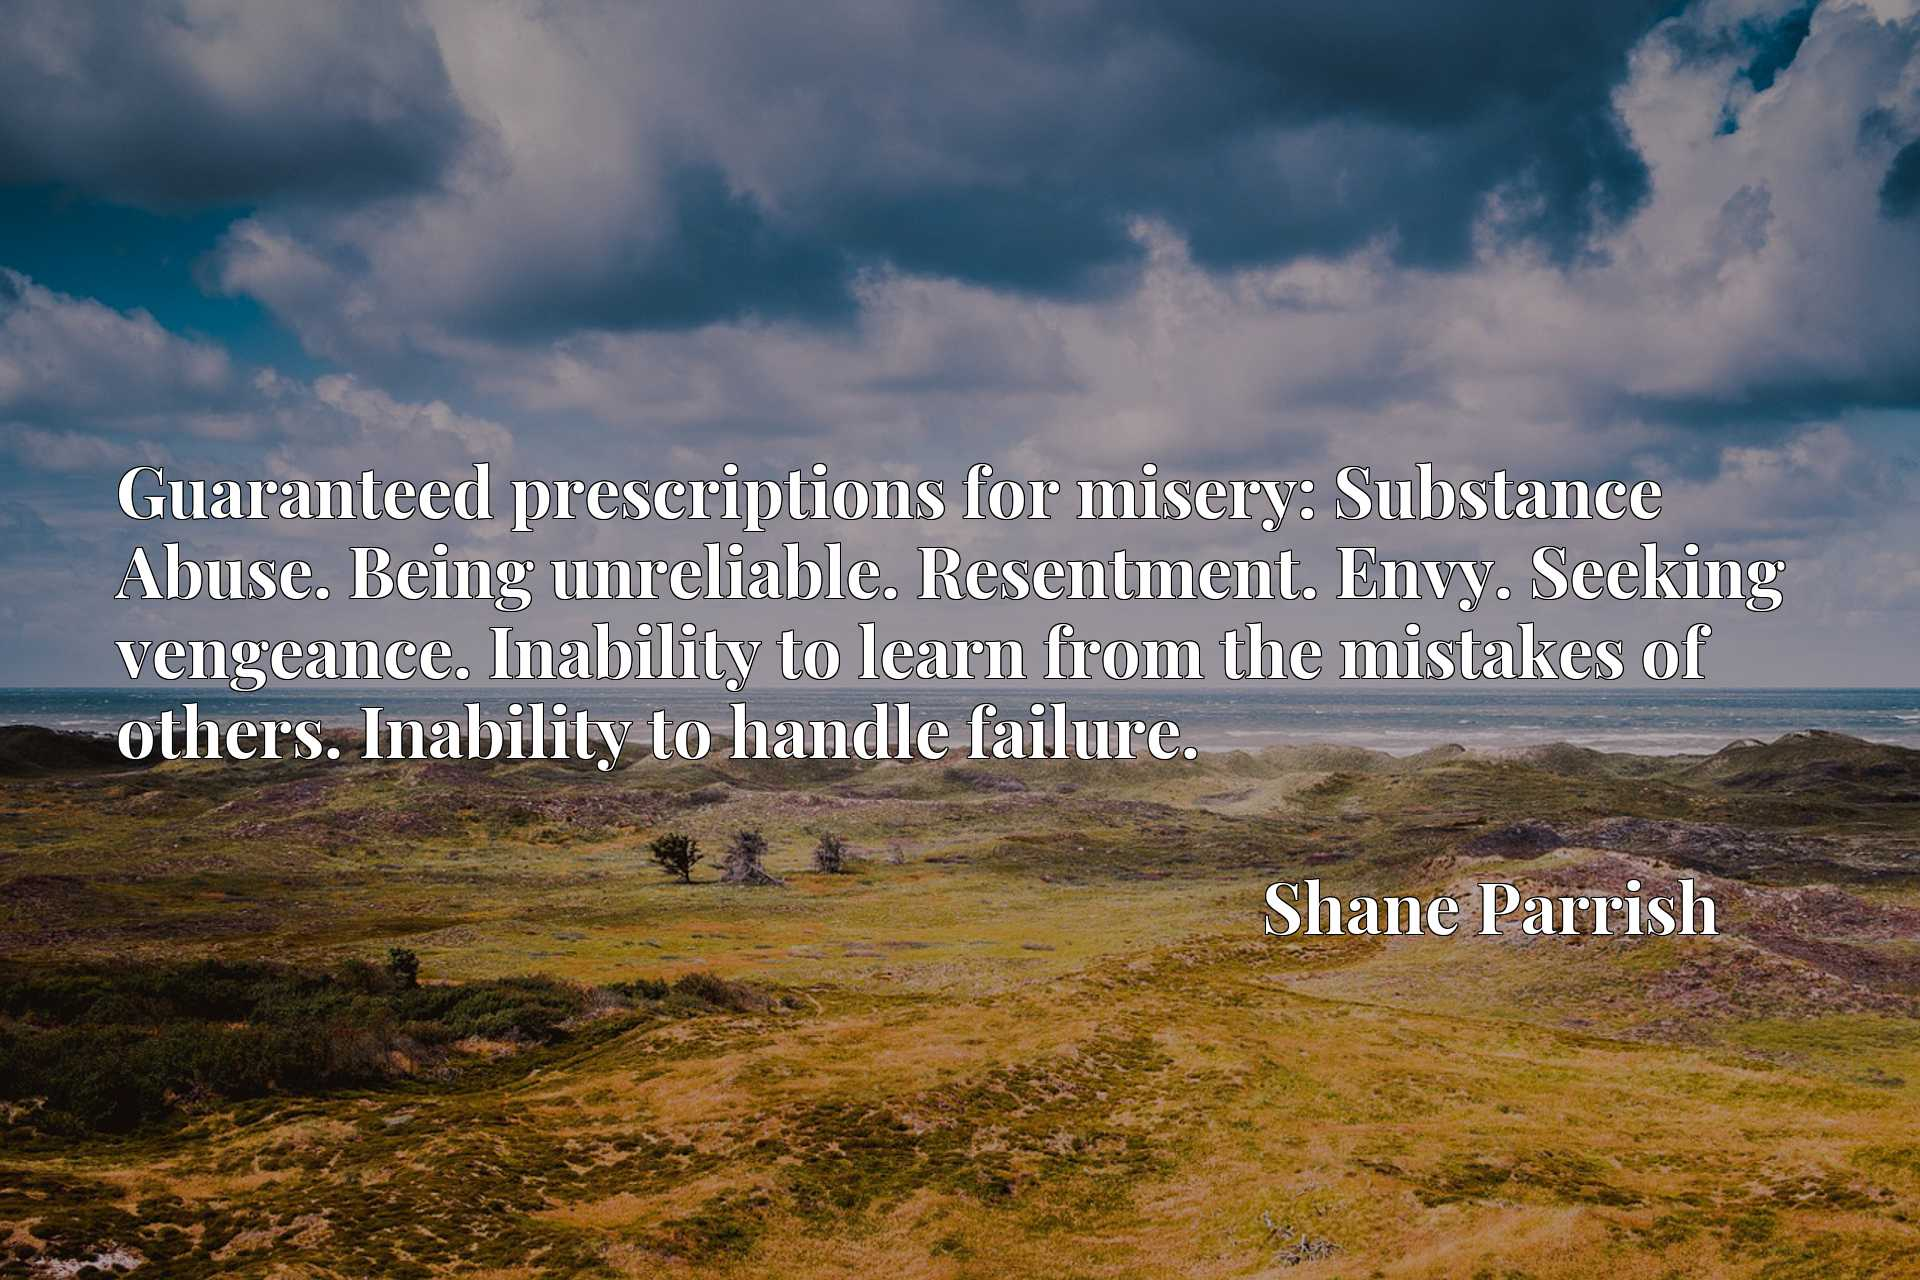 Guaranteed prescriptions for misery: Substance Abuse. Being unreliable. Resentment. Envy. Seeking vengeance. Inability to learn from the mistakes of others. Inability to handle failure.